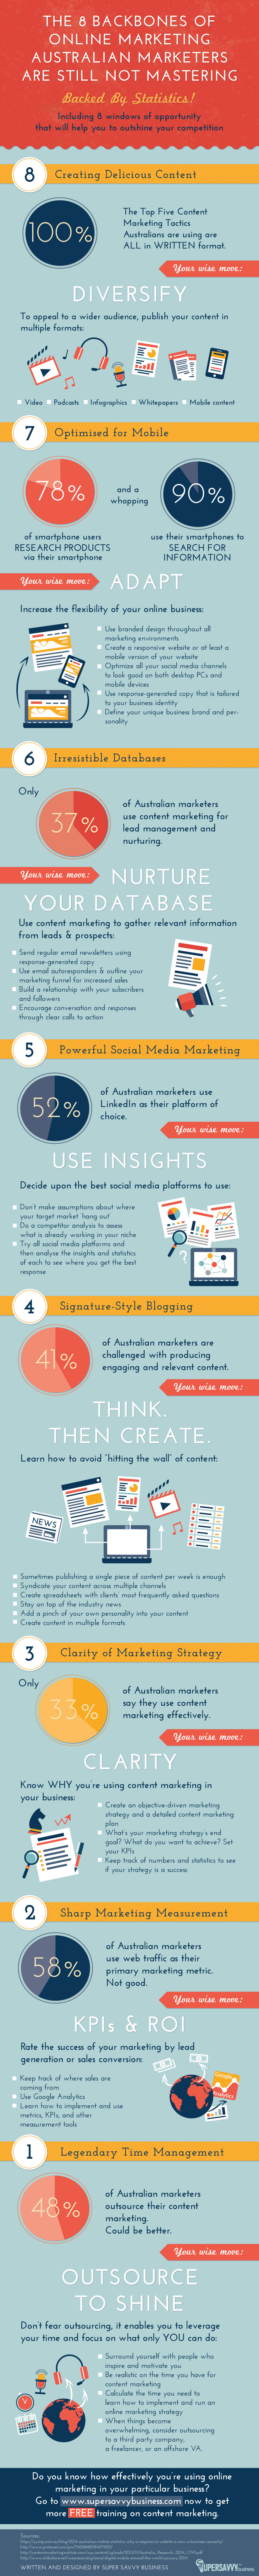 8 Backbones Of A Profitable Online Business Infographic